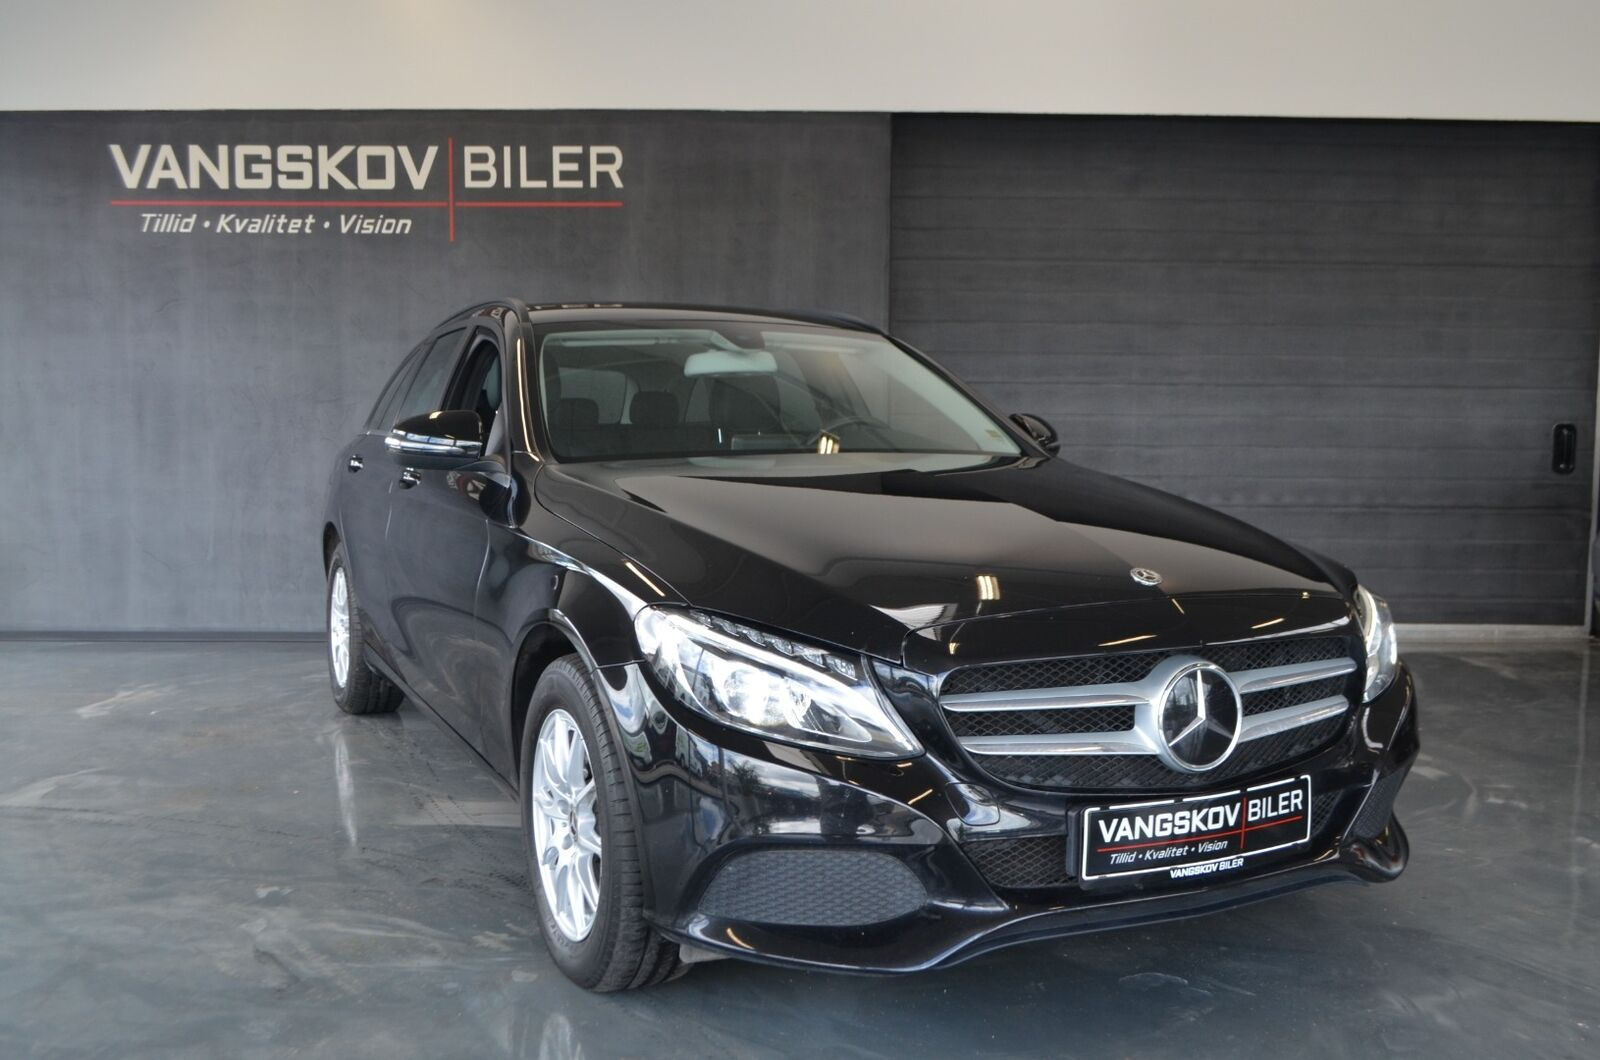 Mercedes C220 d 2,2 Business stc. aut. 5d - 314.895 kr.